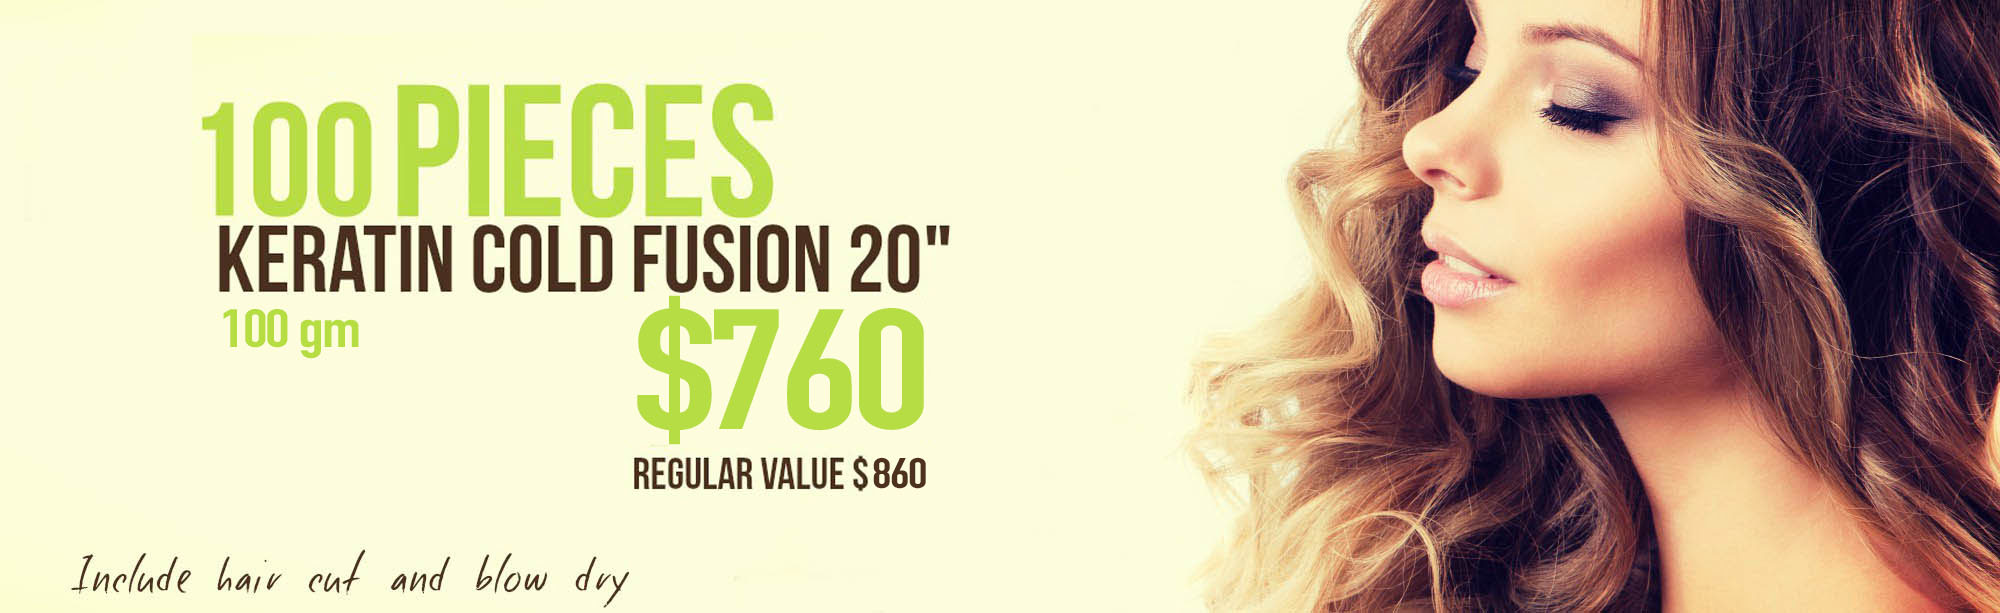 "Miami Hair Extensions Salon ,100 pieces keratin cold fusion 20"",Include hair cut  blow dry, kit argan oil"